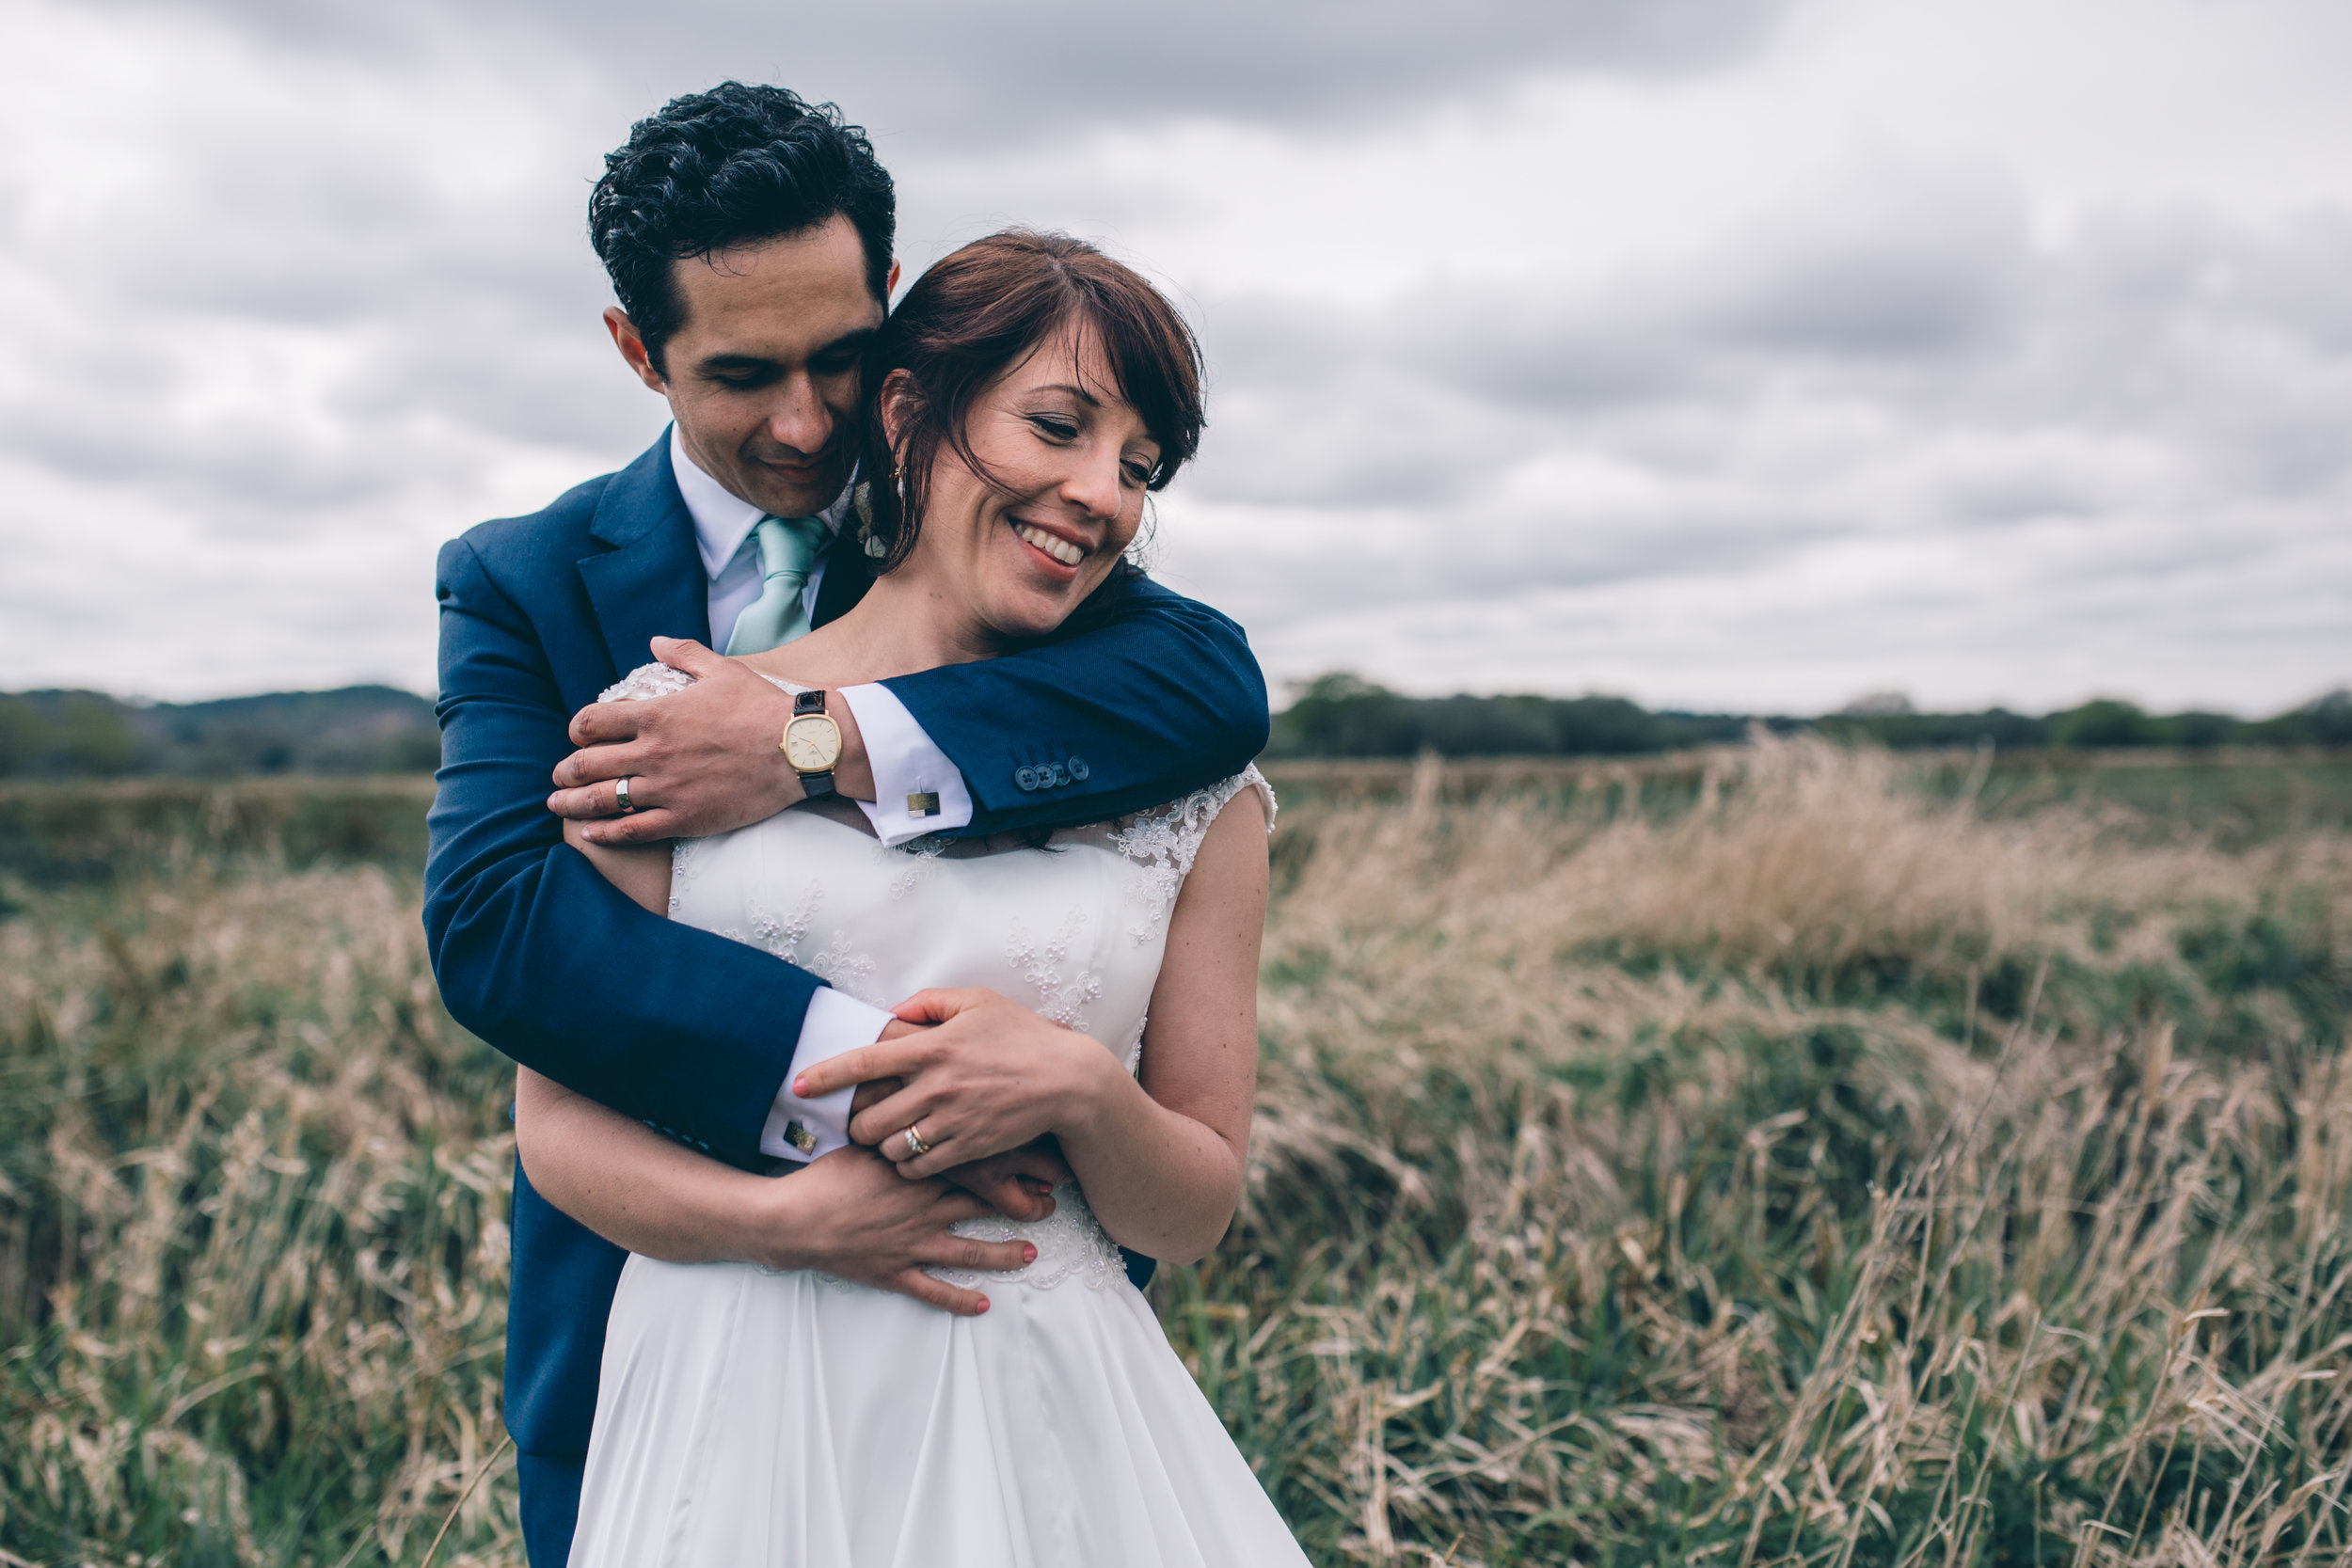 """Naomi did a totally fantastic job of capturing our wedding at Sopley Mill. She has a real talent for catching those special moments which help you relive the day when looking back through the prints. Incredibly organised but super cool and relaxed, a perfect balance for wedding photographer. We can't recommend her highly enough!""  Hannily + John - May 2016"